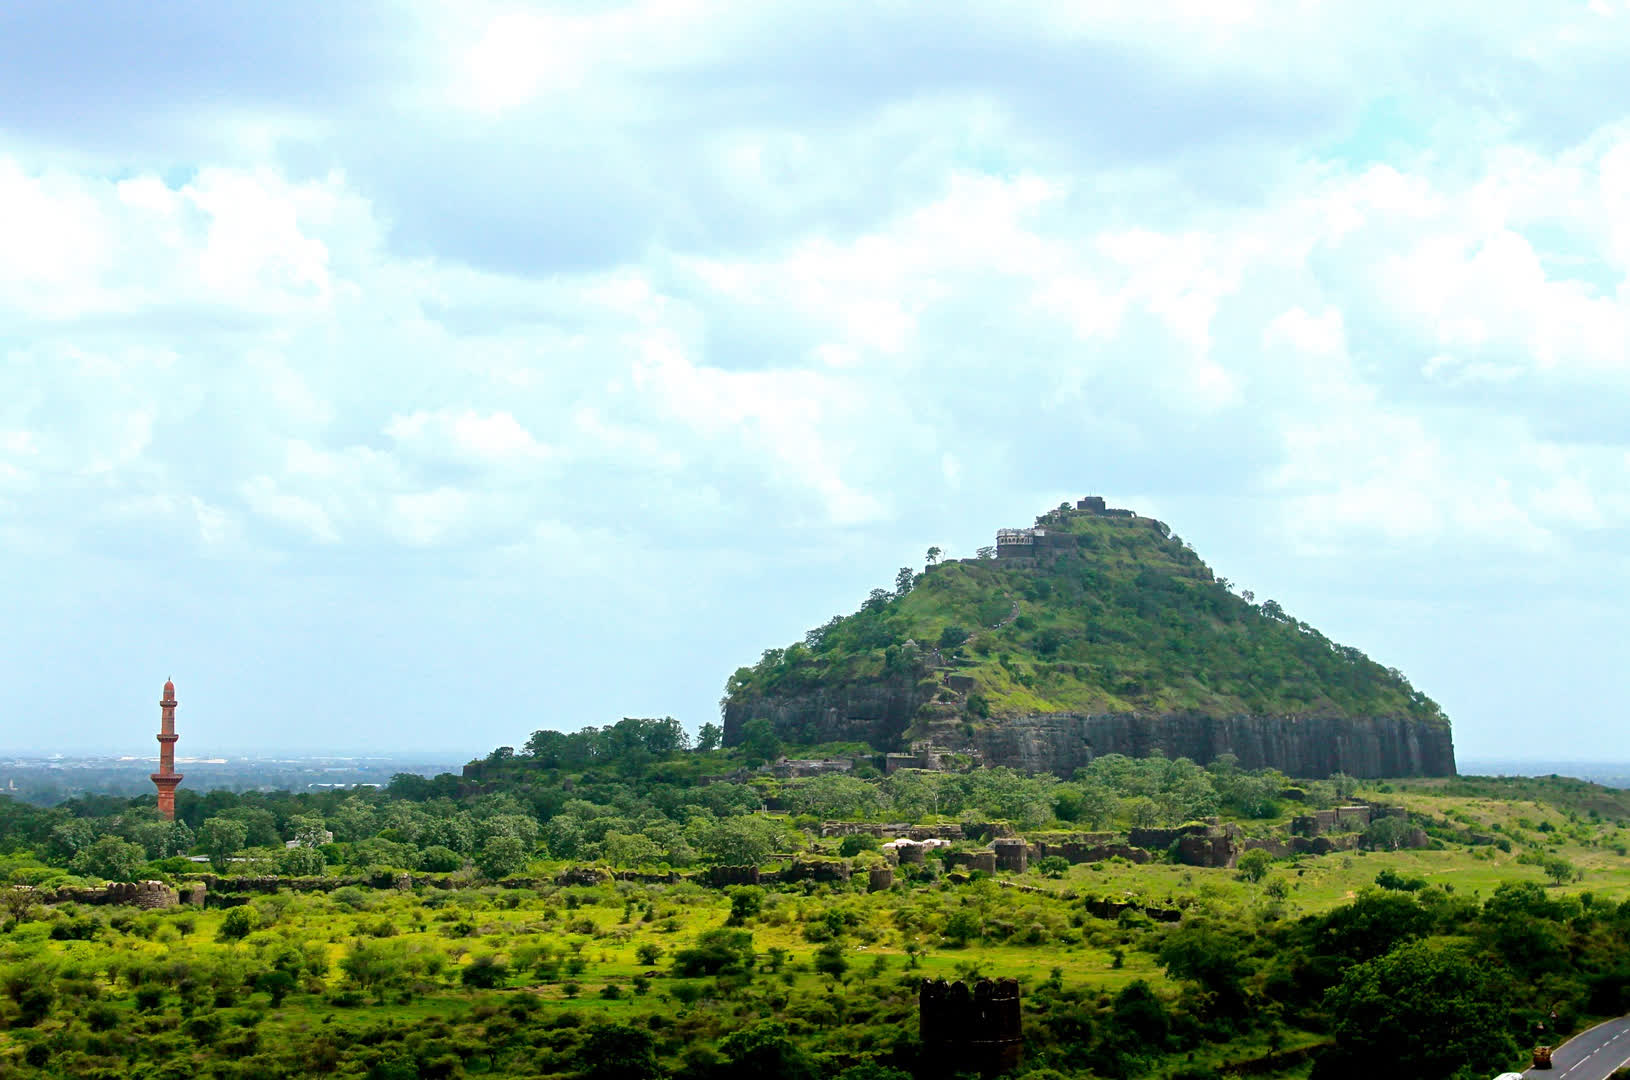 General view of Daulatabad fort, taken from the north